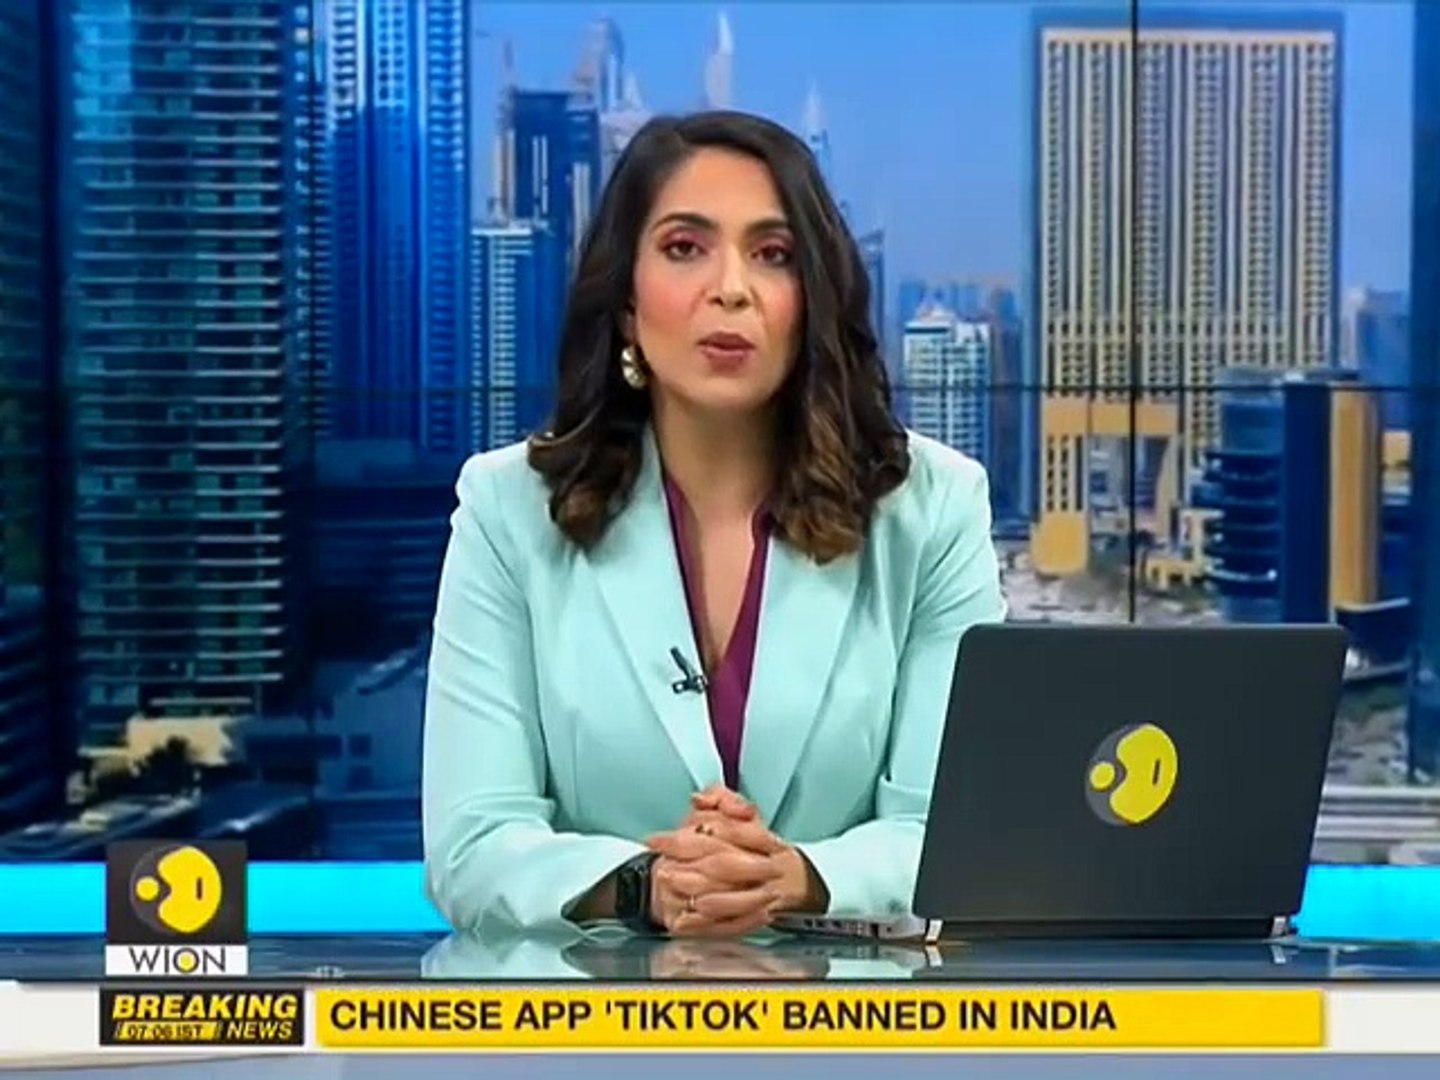 India- PM Modi to address nation at 4pm today - India Top news - WION News